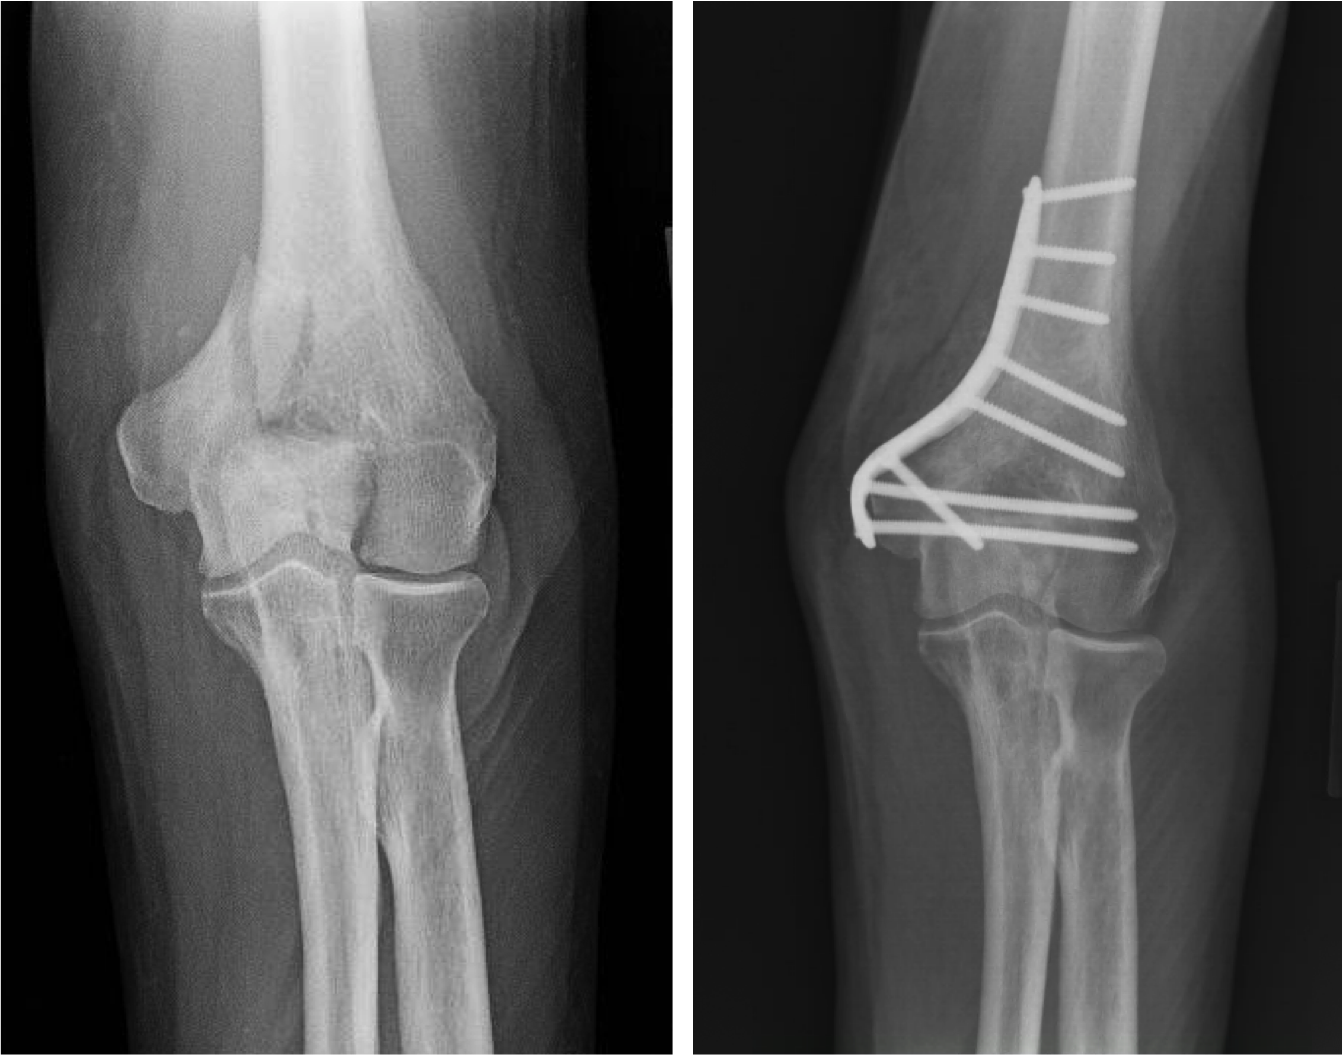 """Humerus ORIF (open reduction internal fixation).  A """"distal"""" humerus fracture is a break at the end of the humerus bone that oftentimes will extend into the elbow joint. These fractures are oftentimes treated with a metal plate and screws to hold the pieces together. Aligning the joint surface is important for restoring motion and function."""